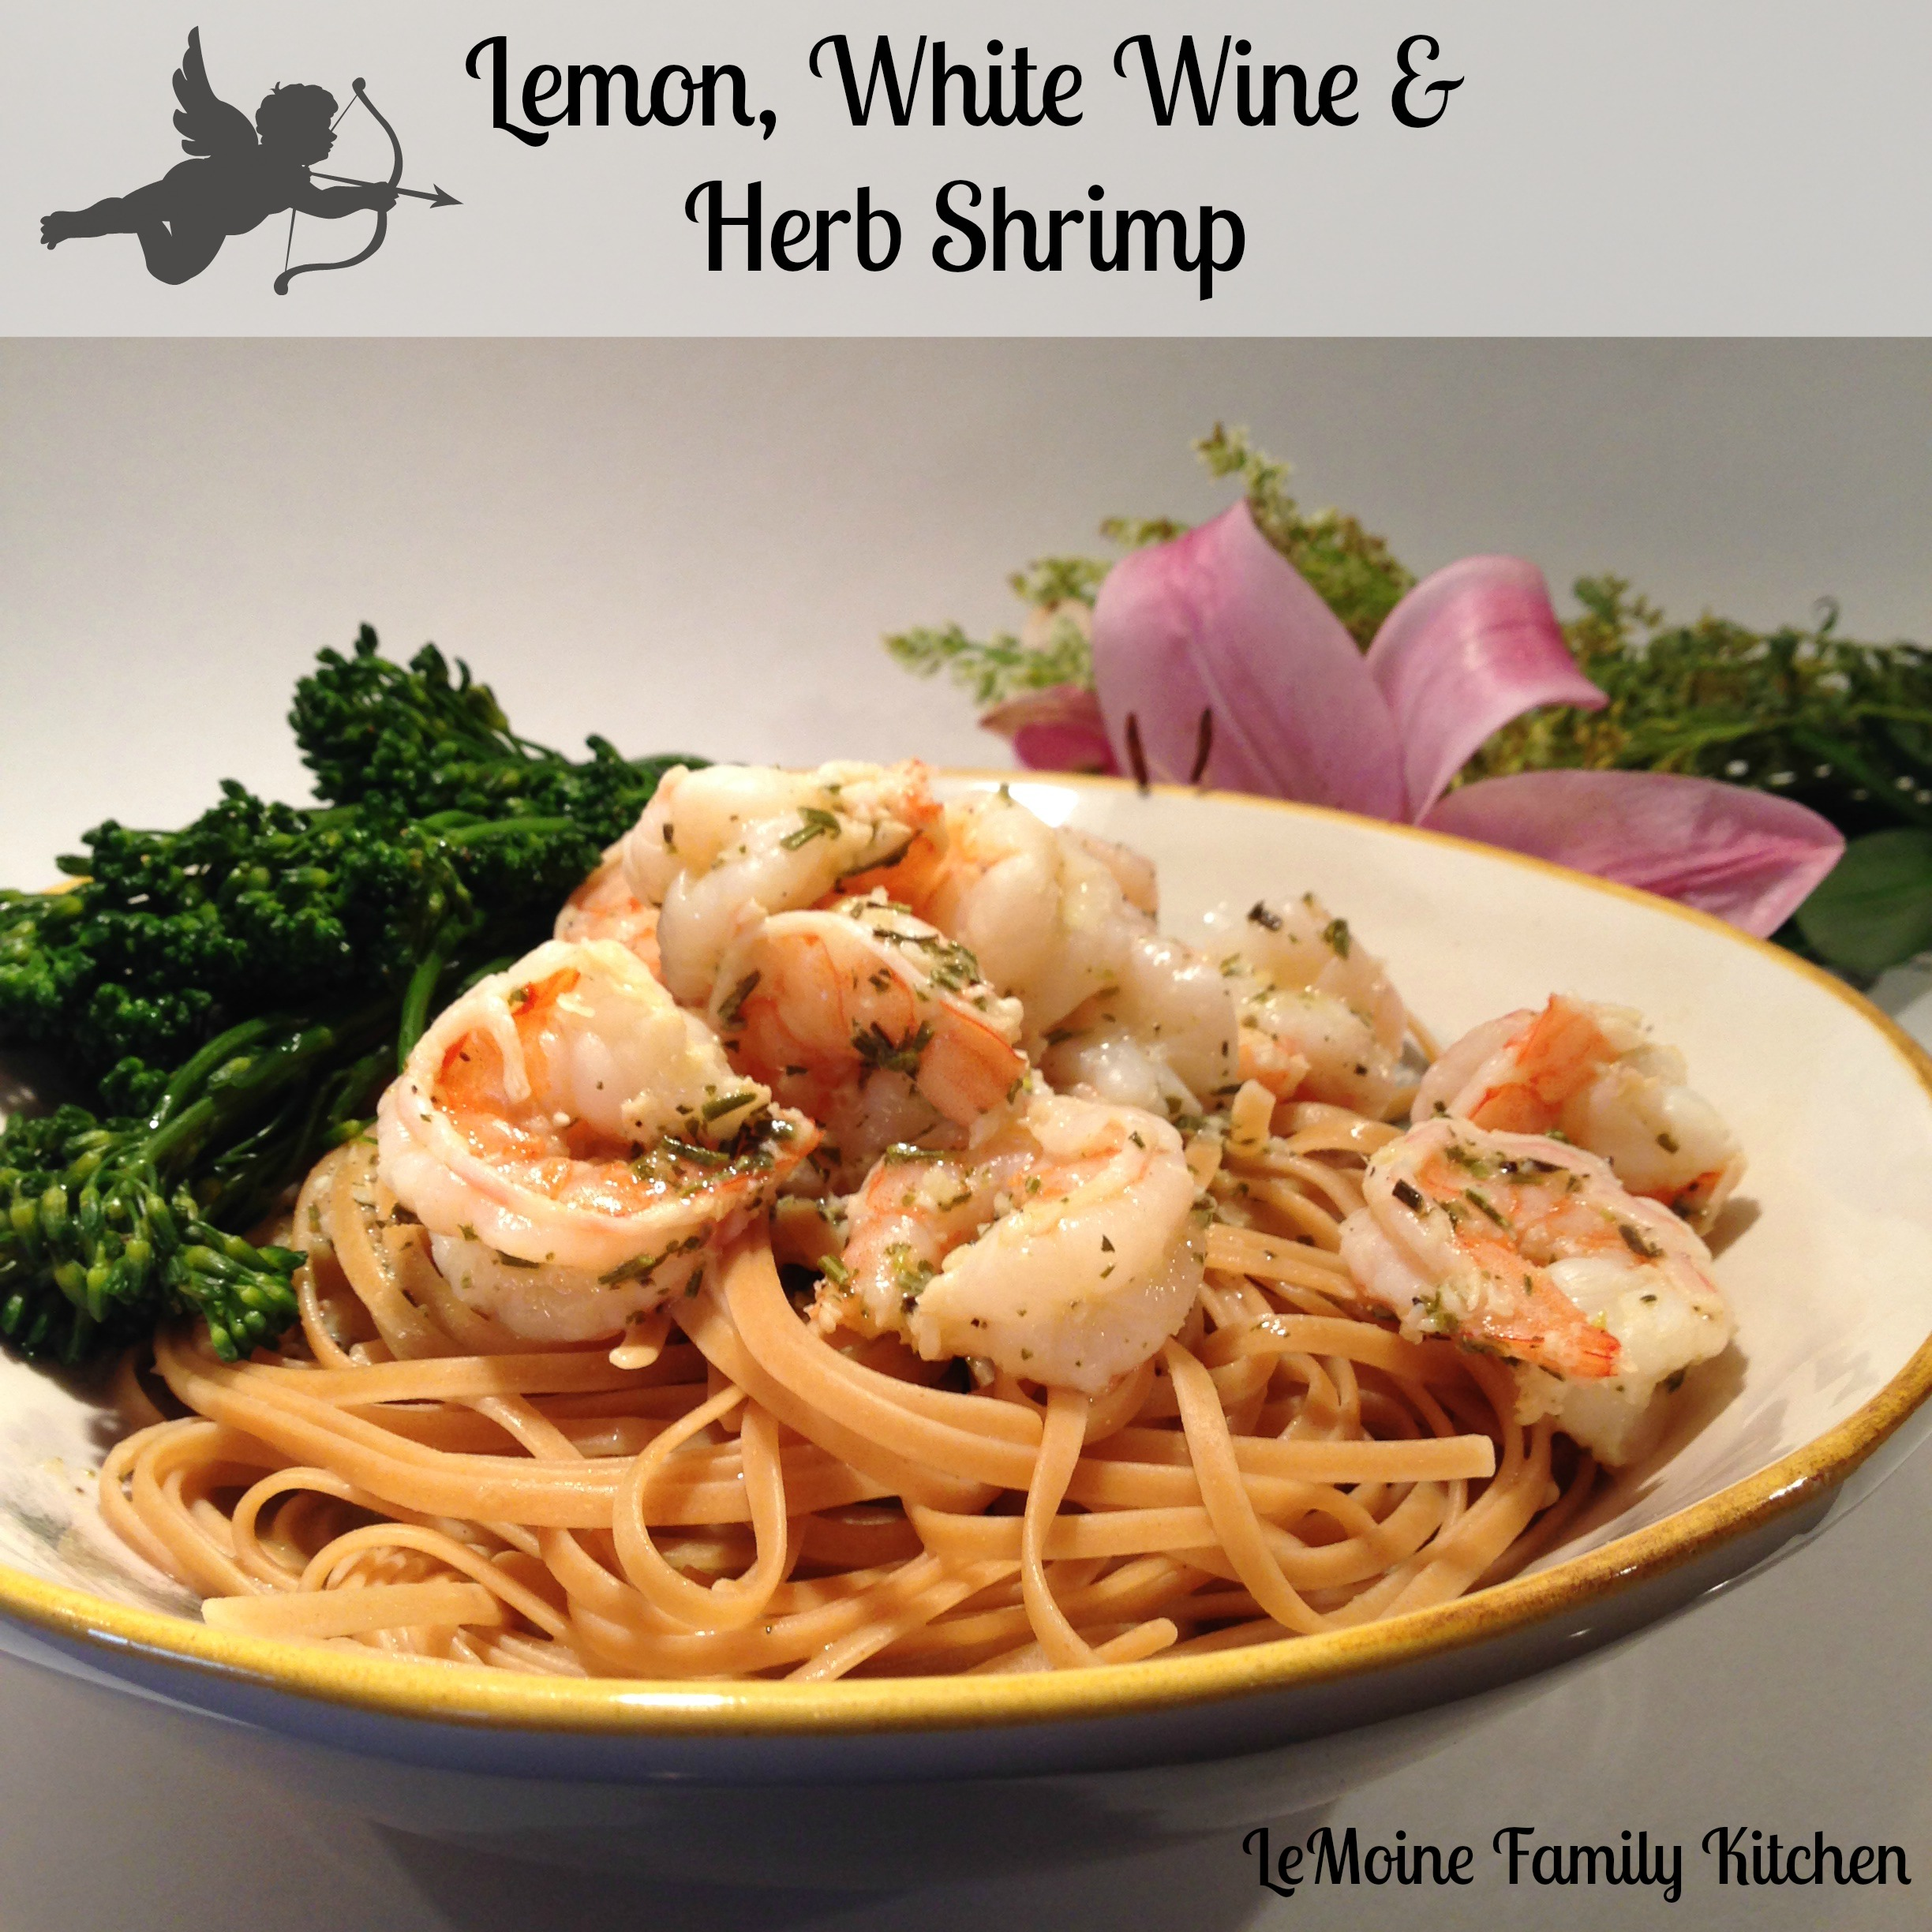 Lemon white wine herb shrimp lemoine family kitchen lemon white wine herb shrimp forumfinder Gallery